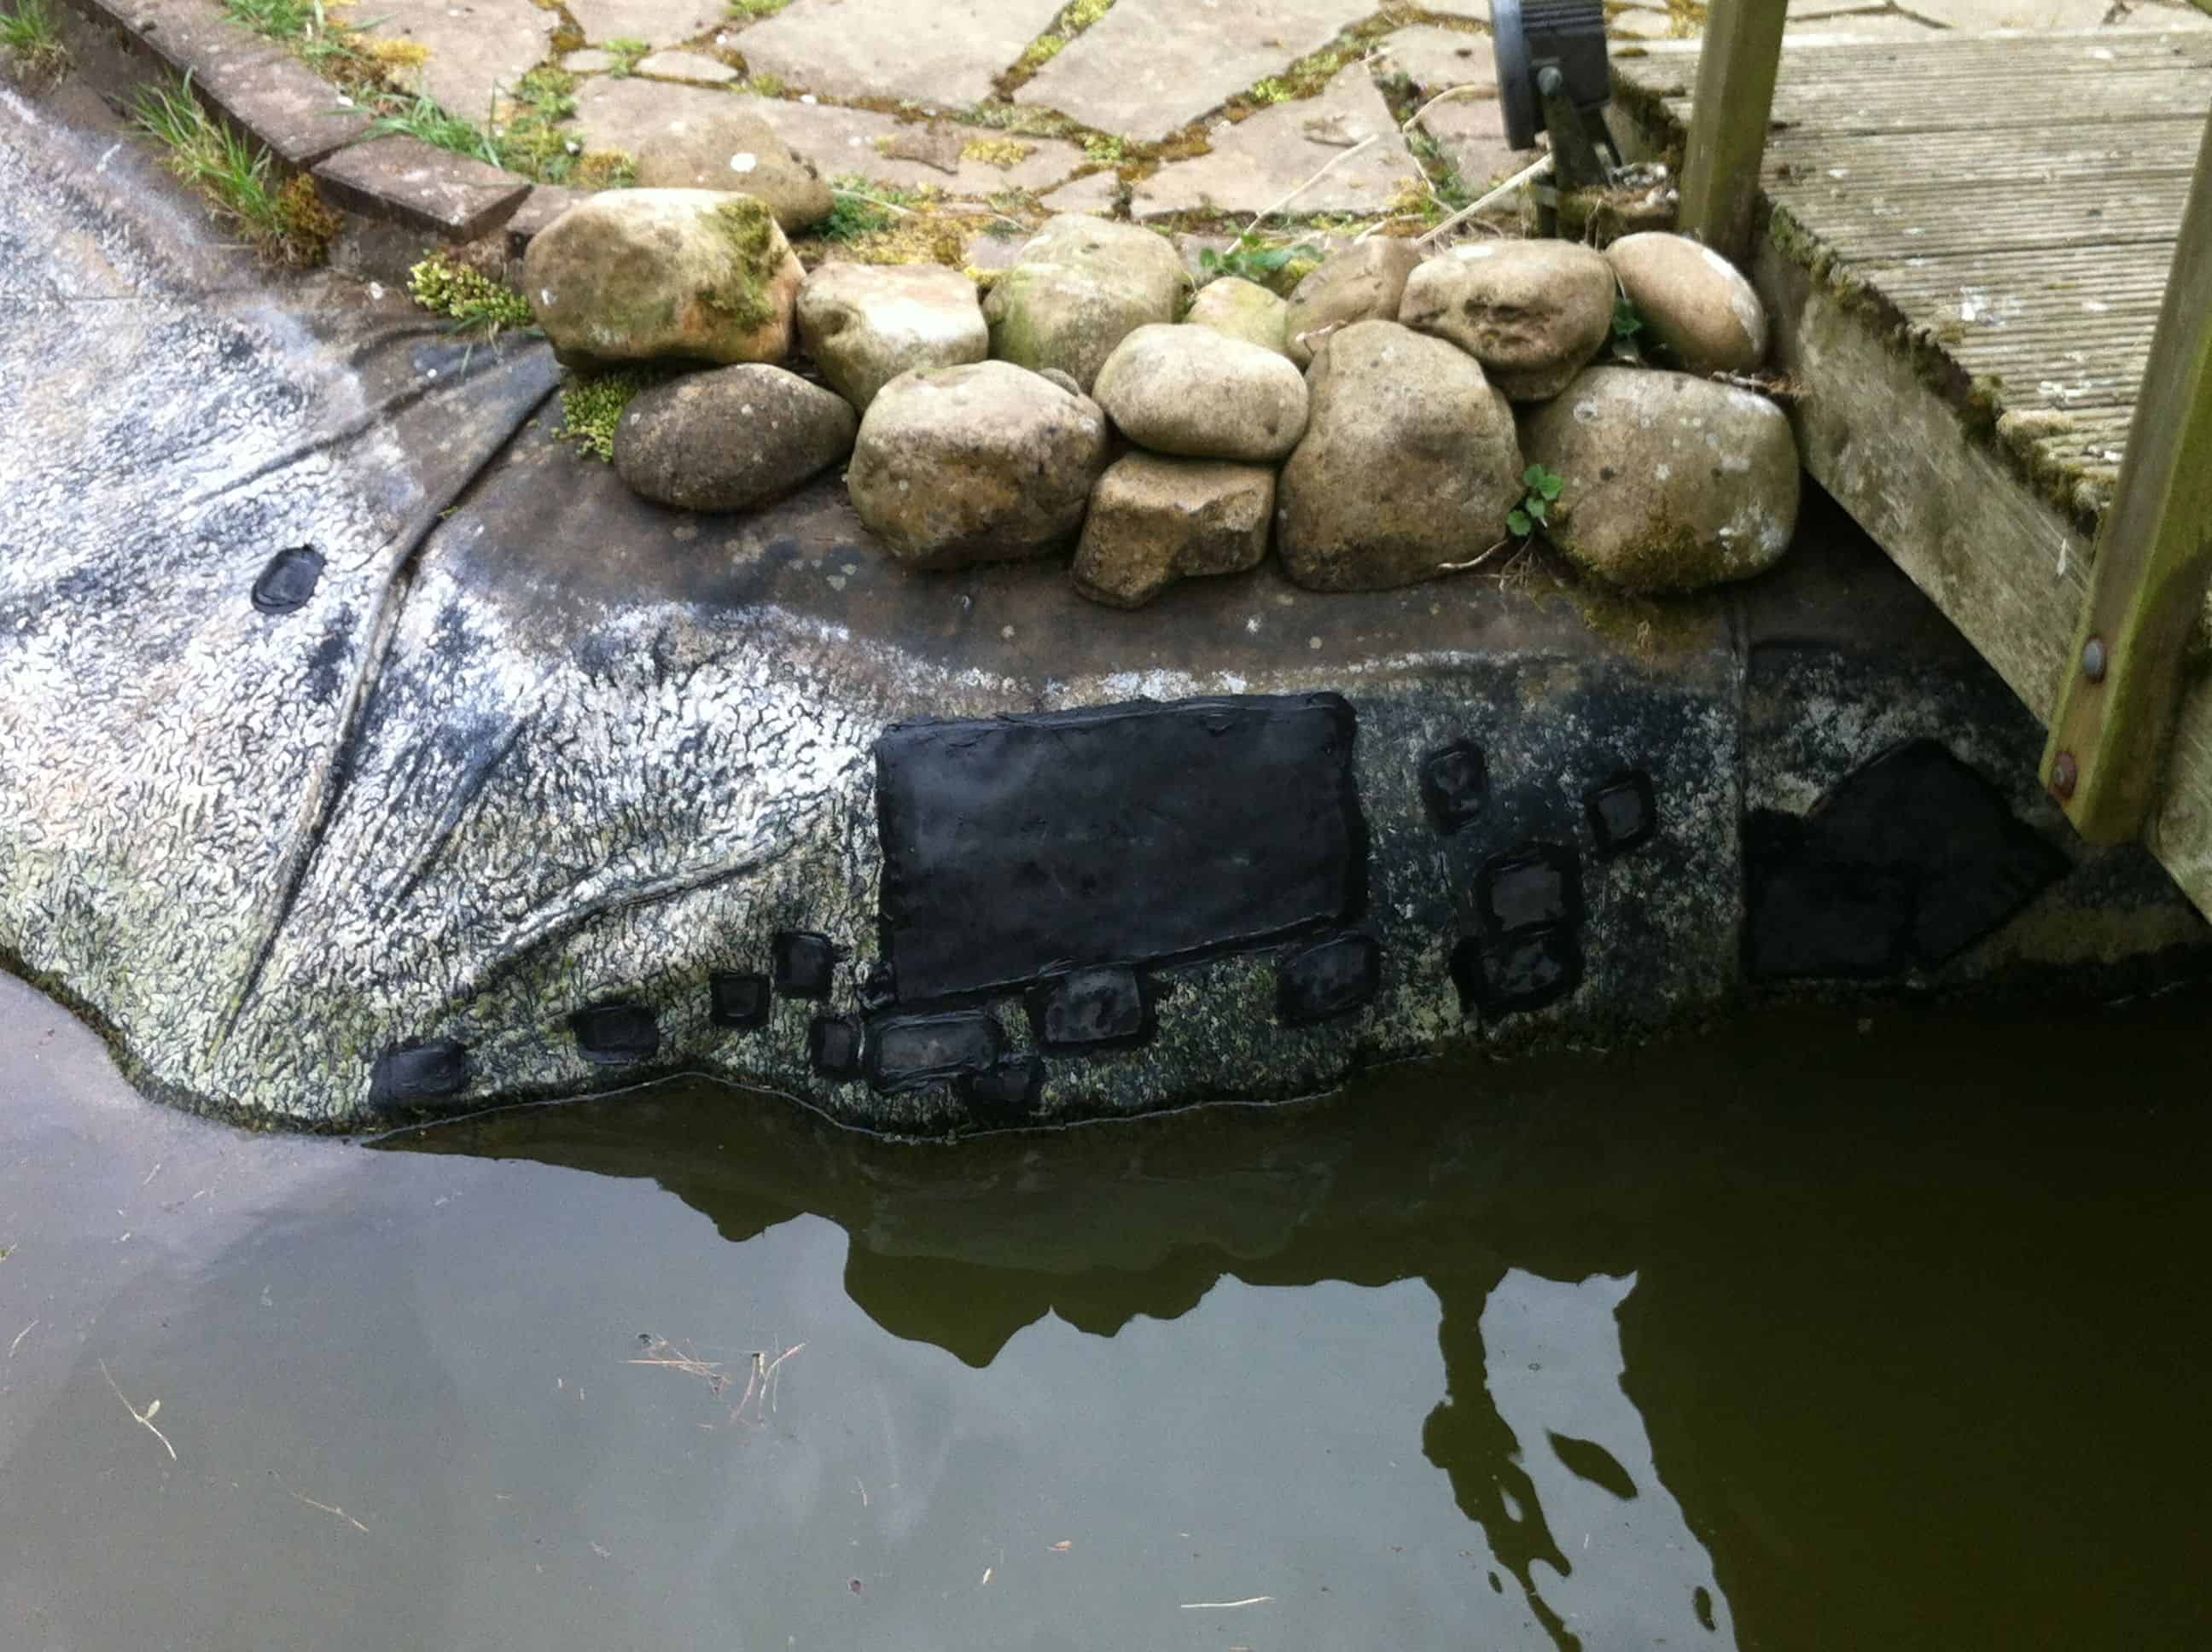 Gallery repairs pond works for Giant koi pond